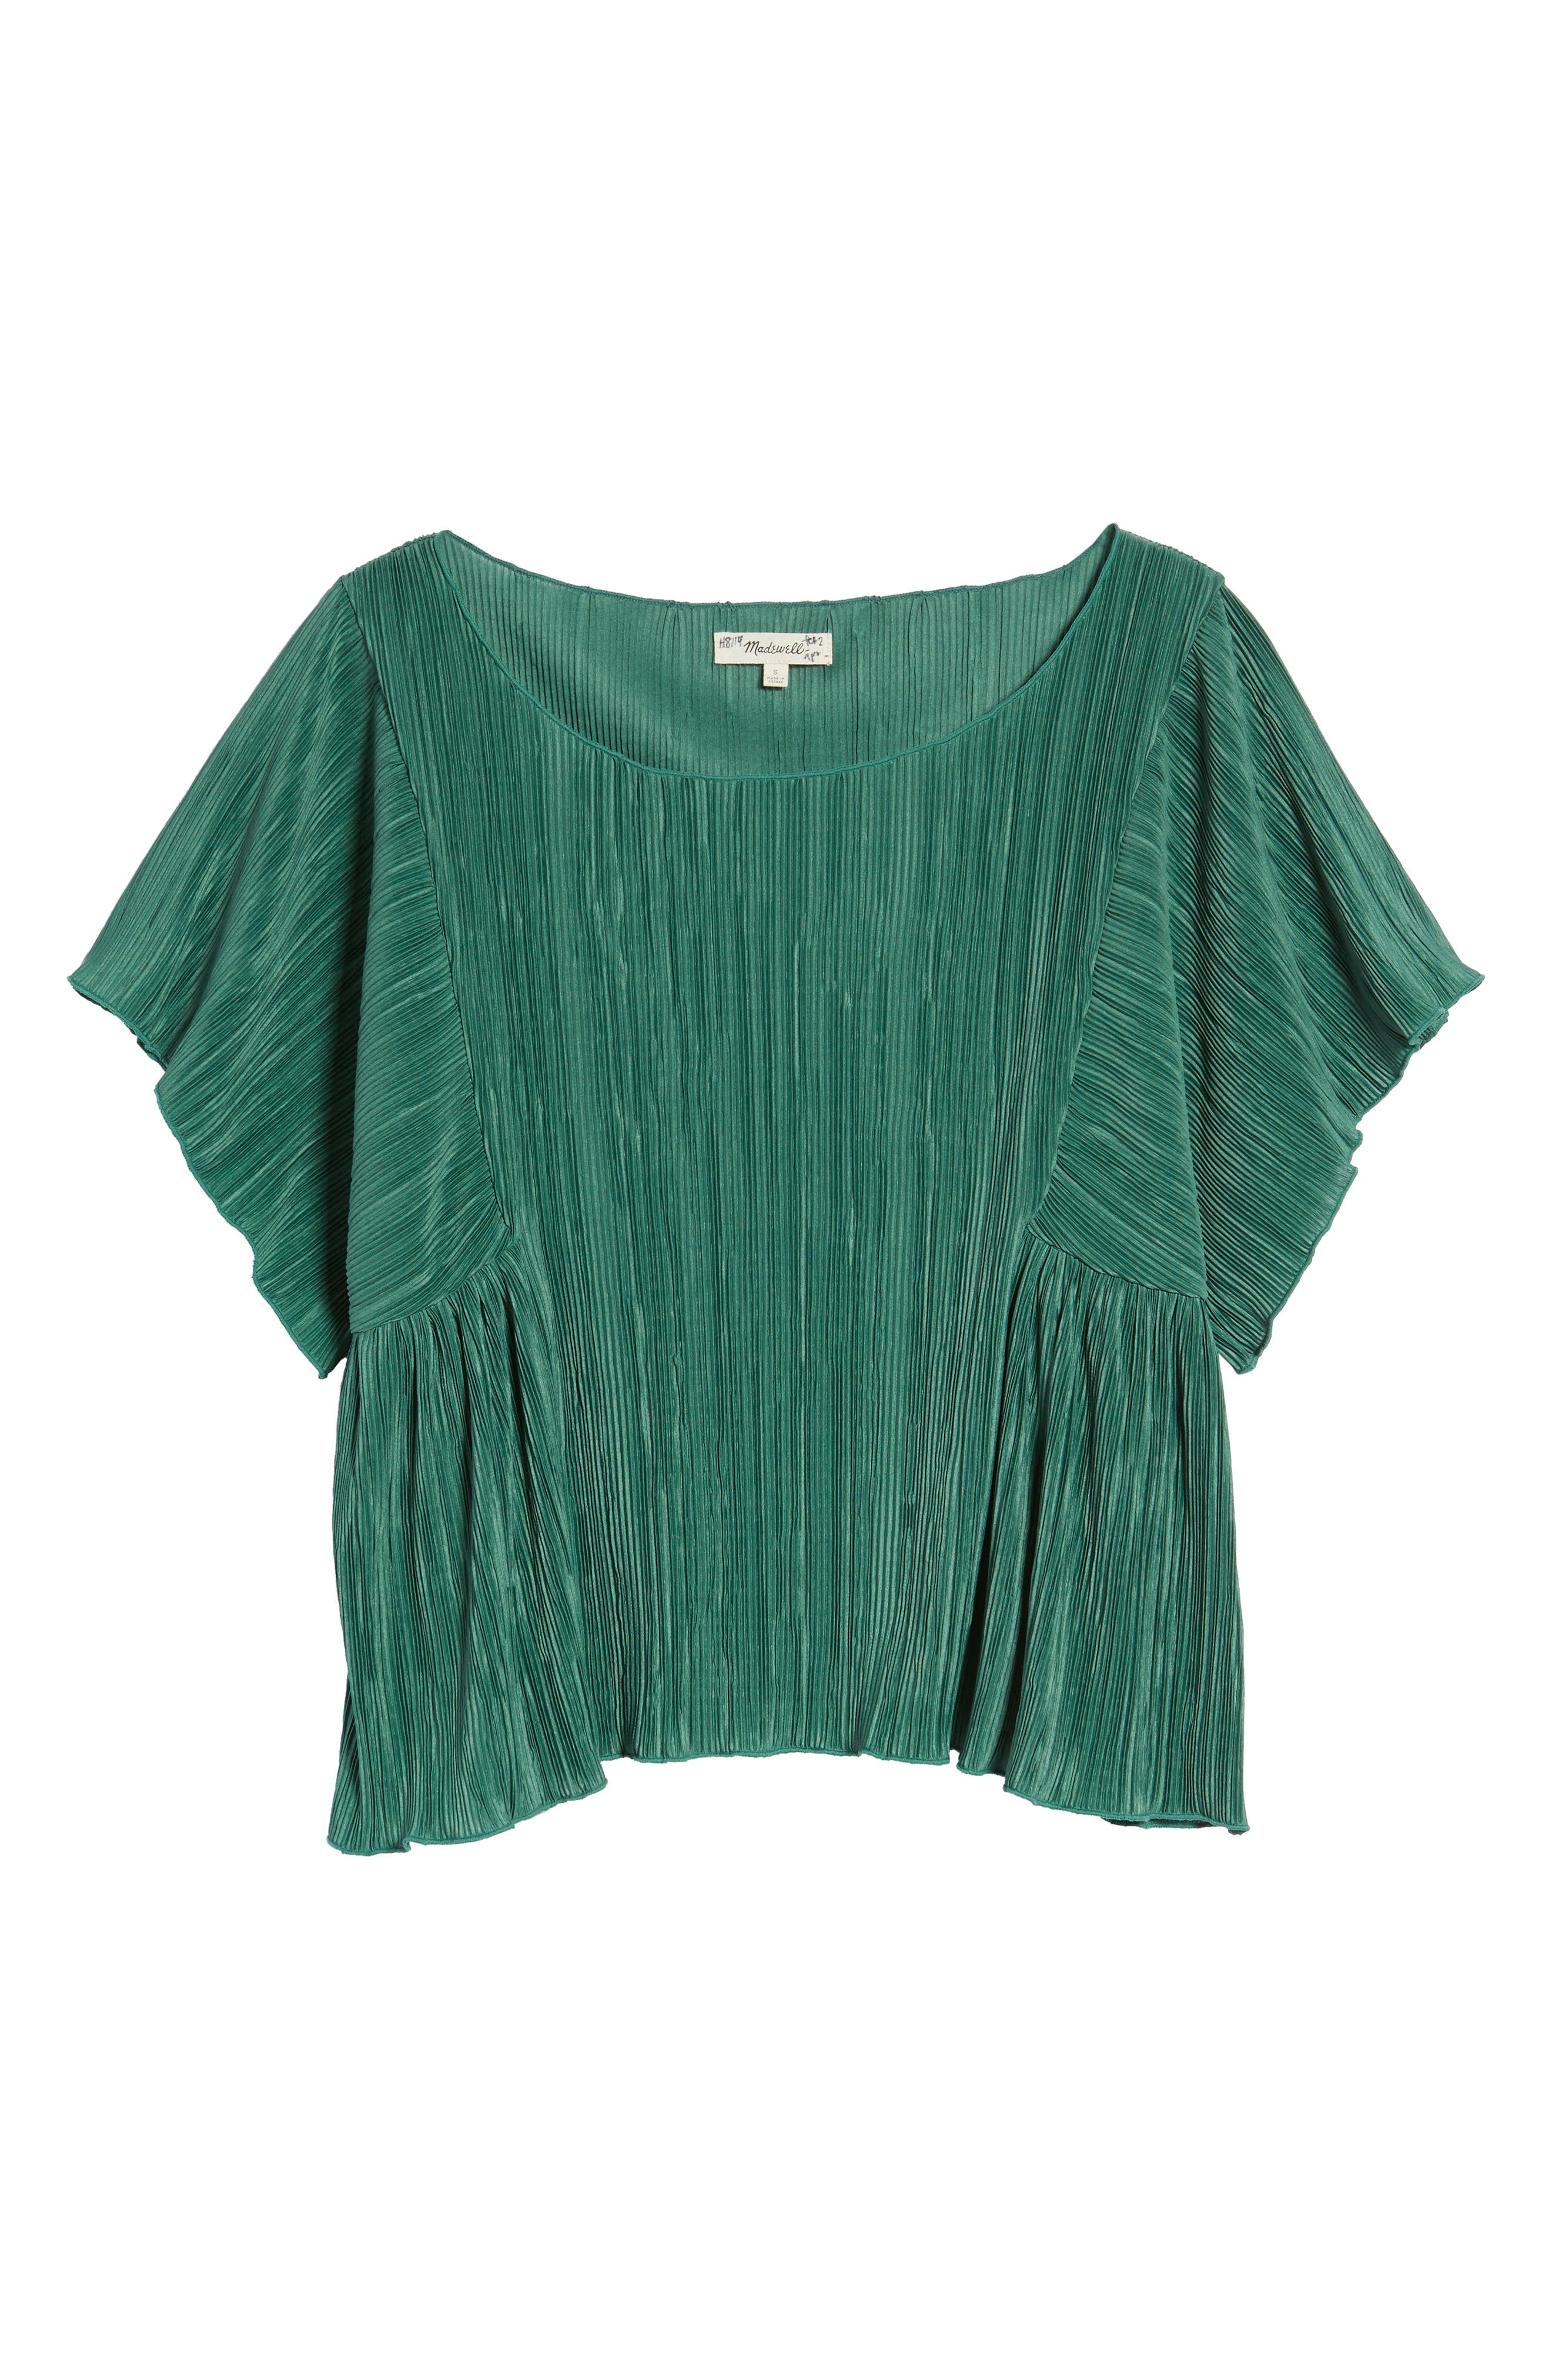 Micropleat Top,                             Alternate thumbnail 7, color,                             Dark Green